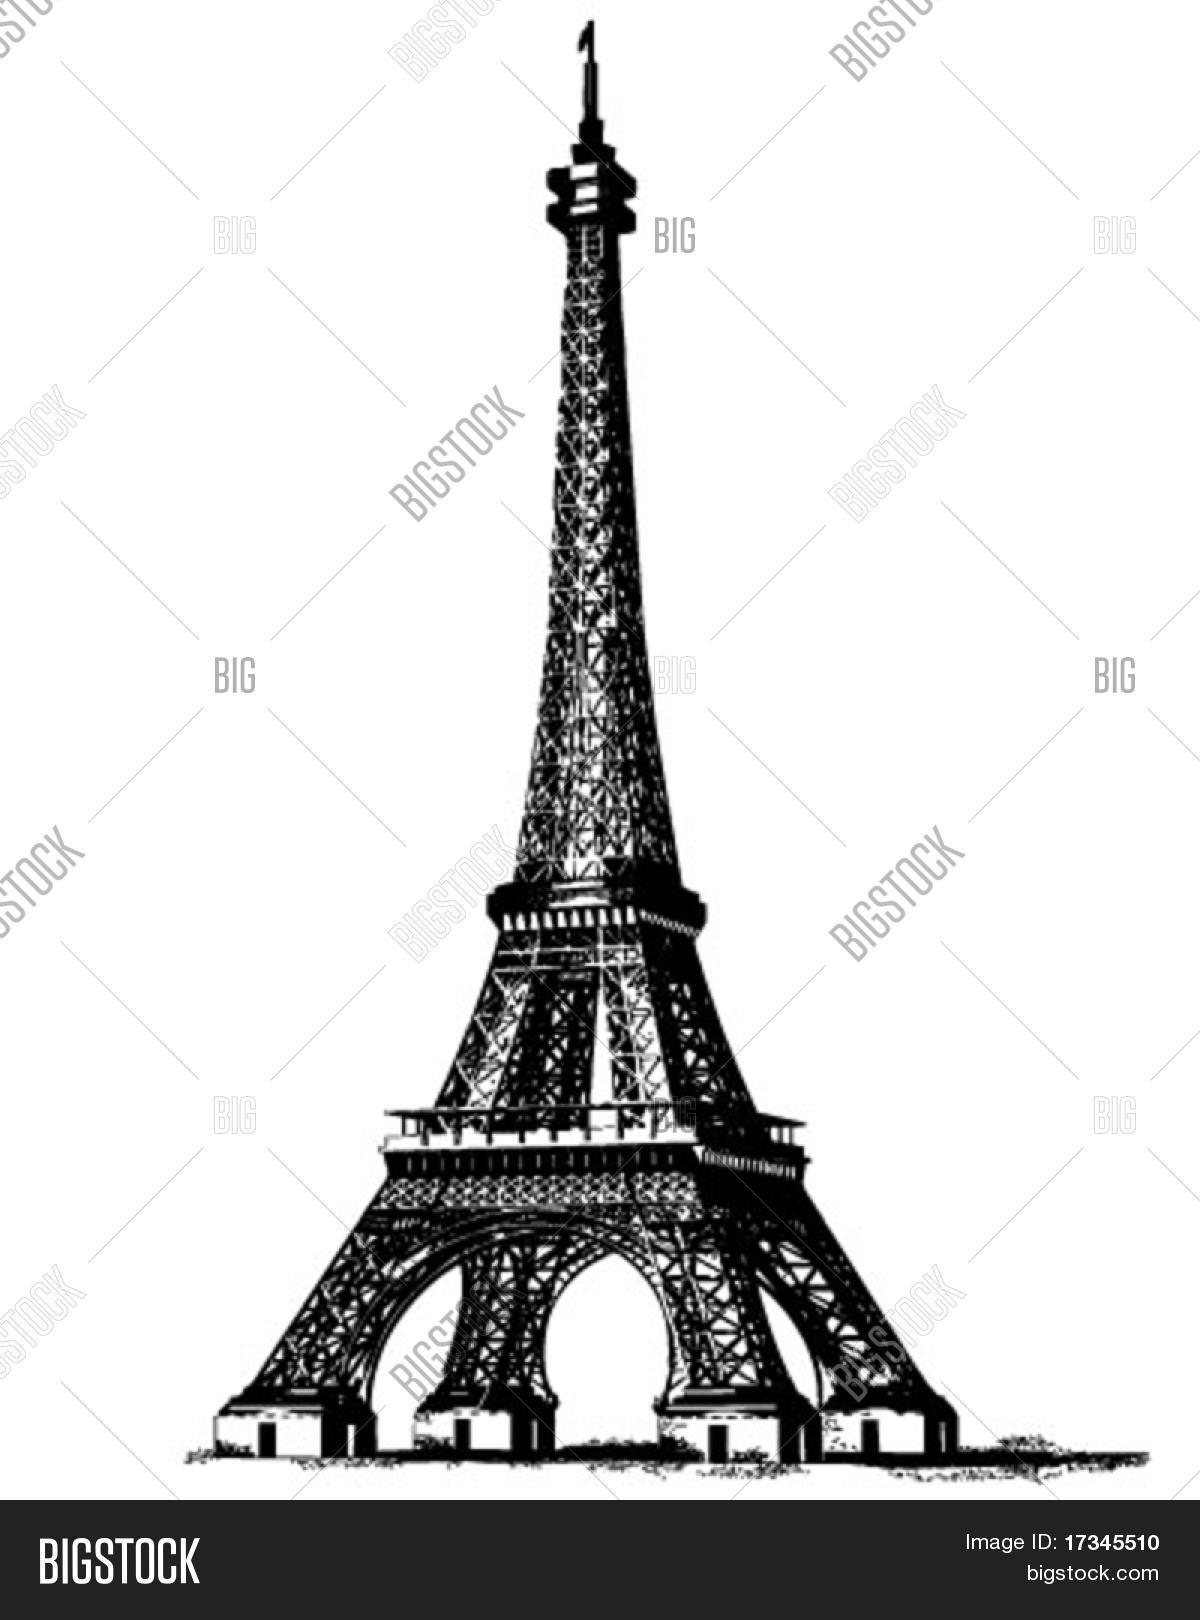 Eiffel tower 2 vector photo free trial bigstock eiffel tower 2 retro clip art thecheapjerseys Gallery